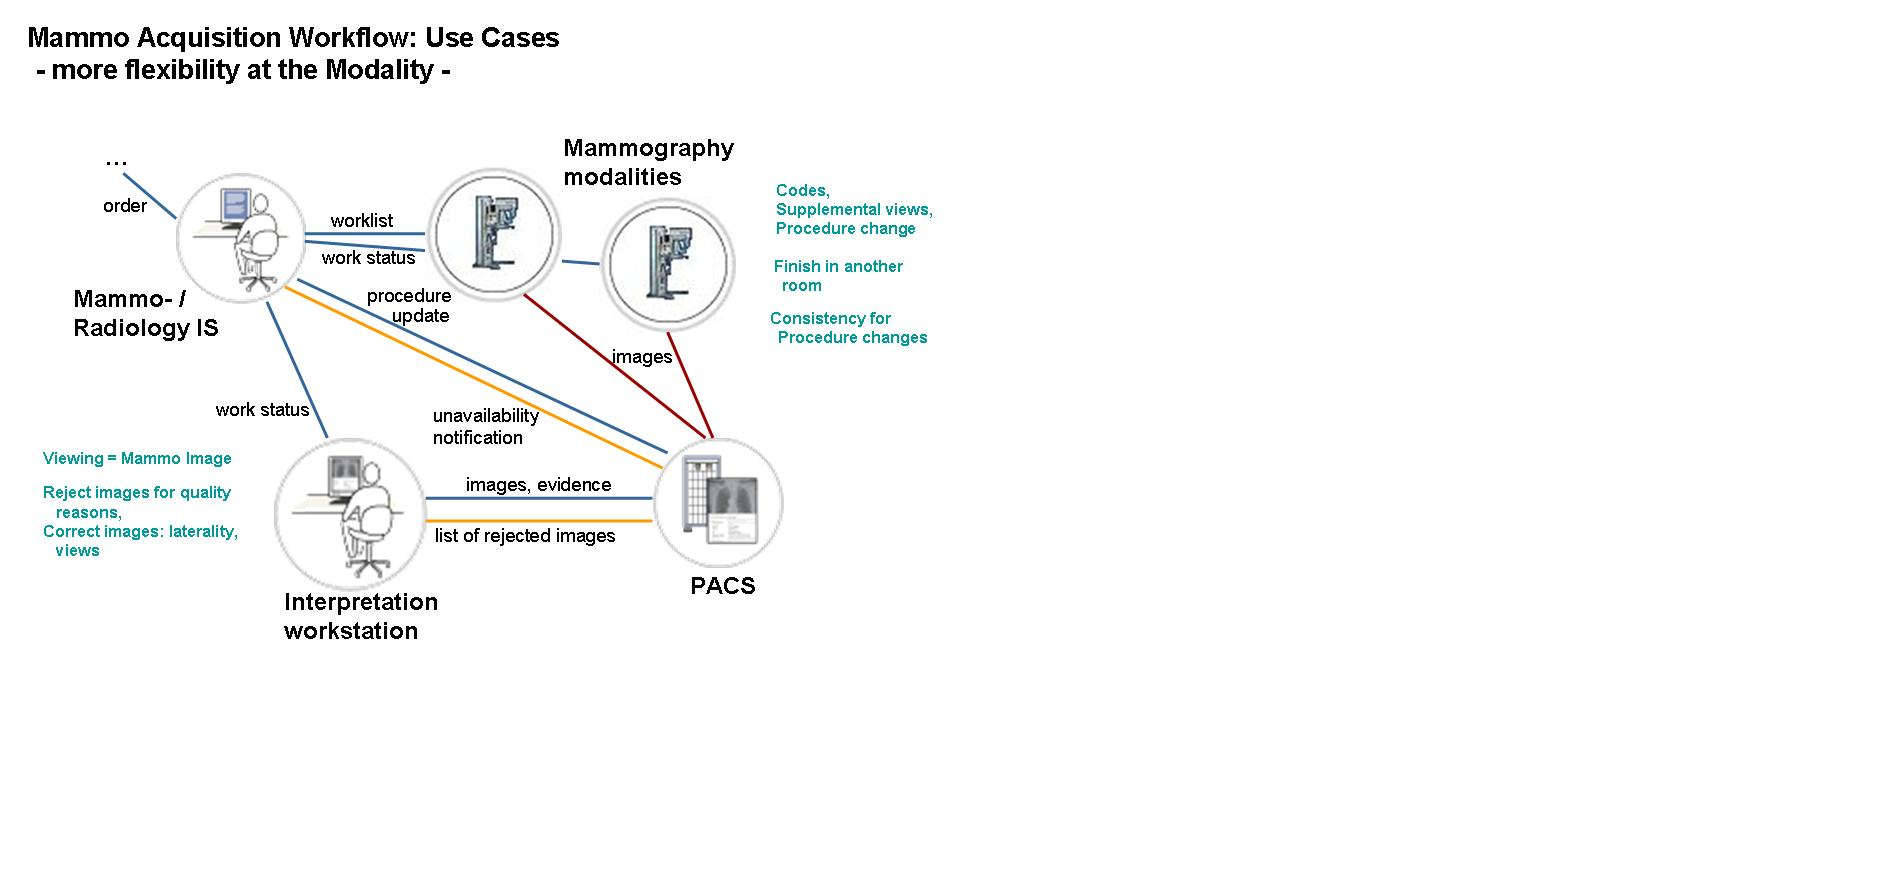 Mammography acquisition workflow ihe wiki mawf v1g ccuart Choice Image